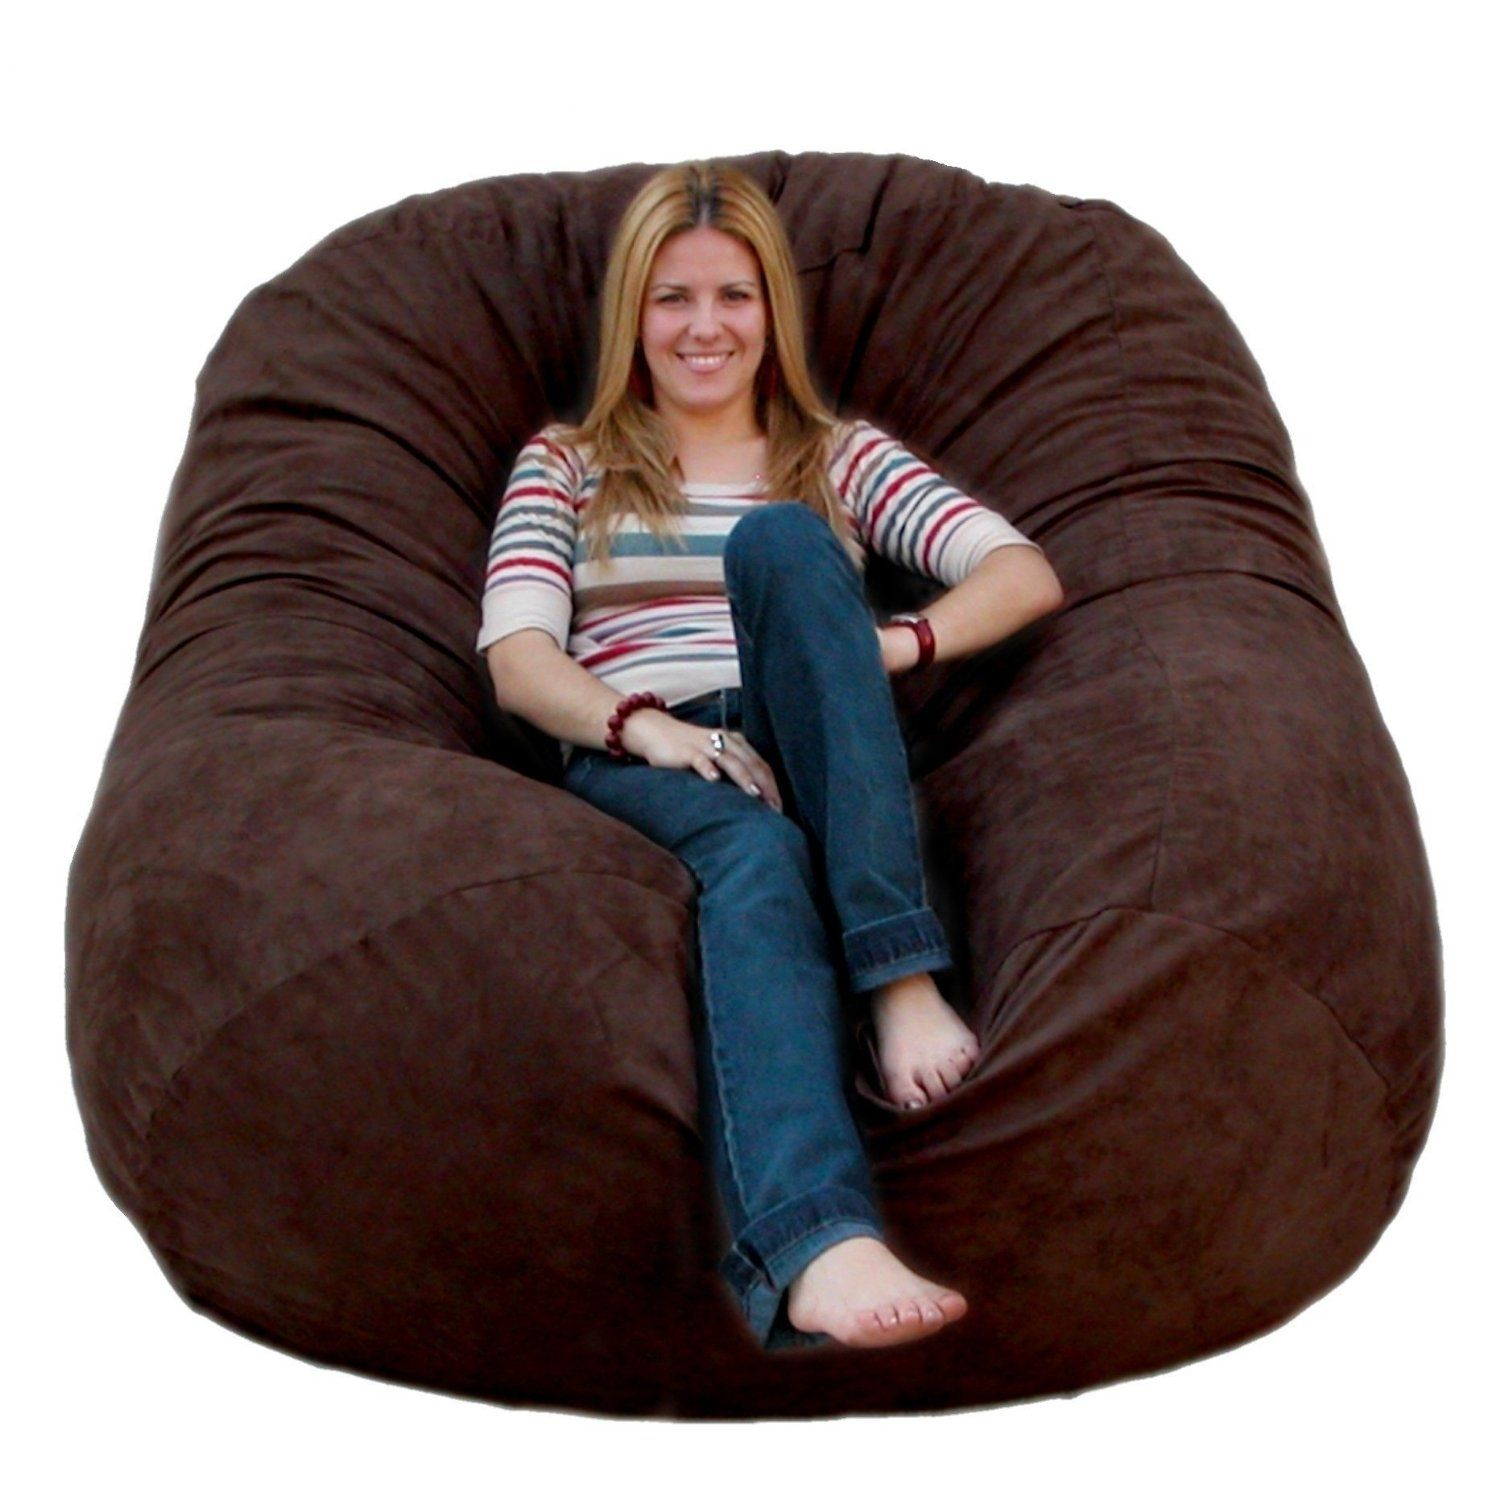 Giant bean bag chairs for adults - Large Bean Bag Chairs For Adults Bean Bag Chairs For Adults Pinterest Bean Bag Chair Bean Bags And Large Bean Bag Chairs